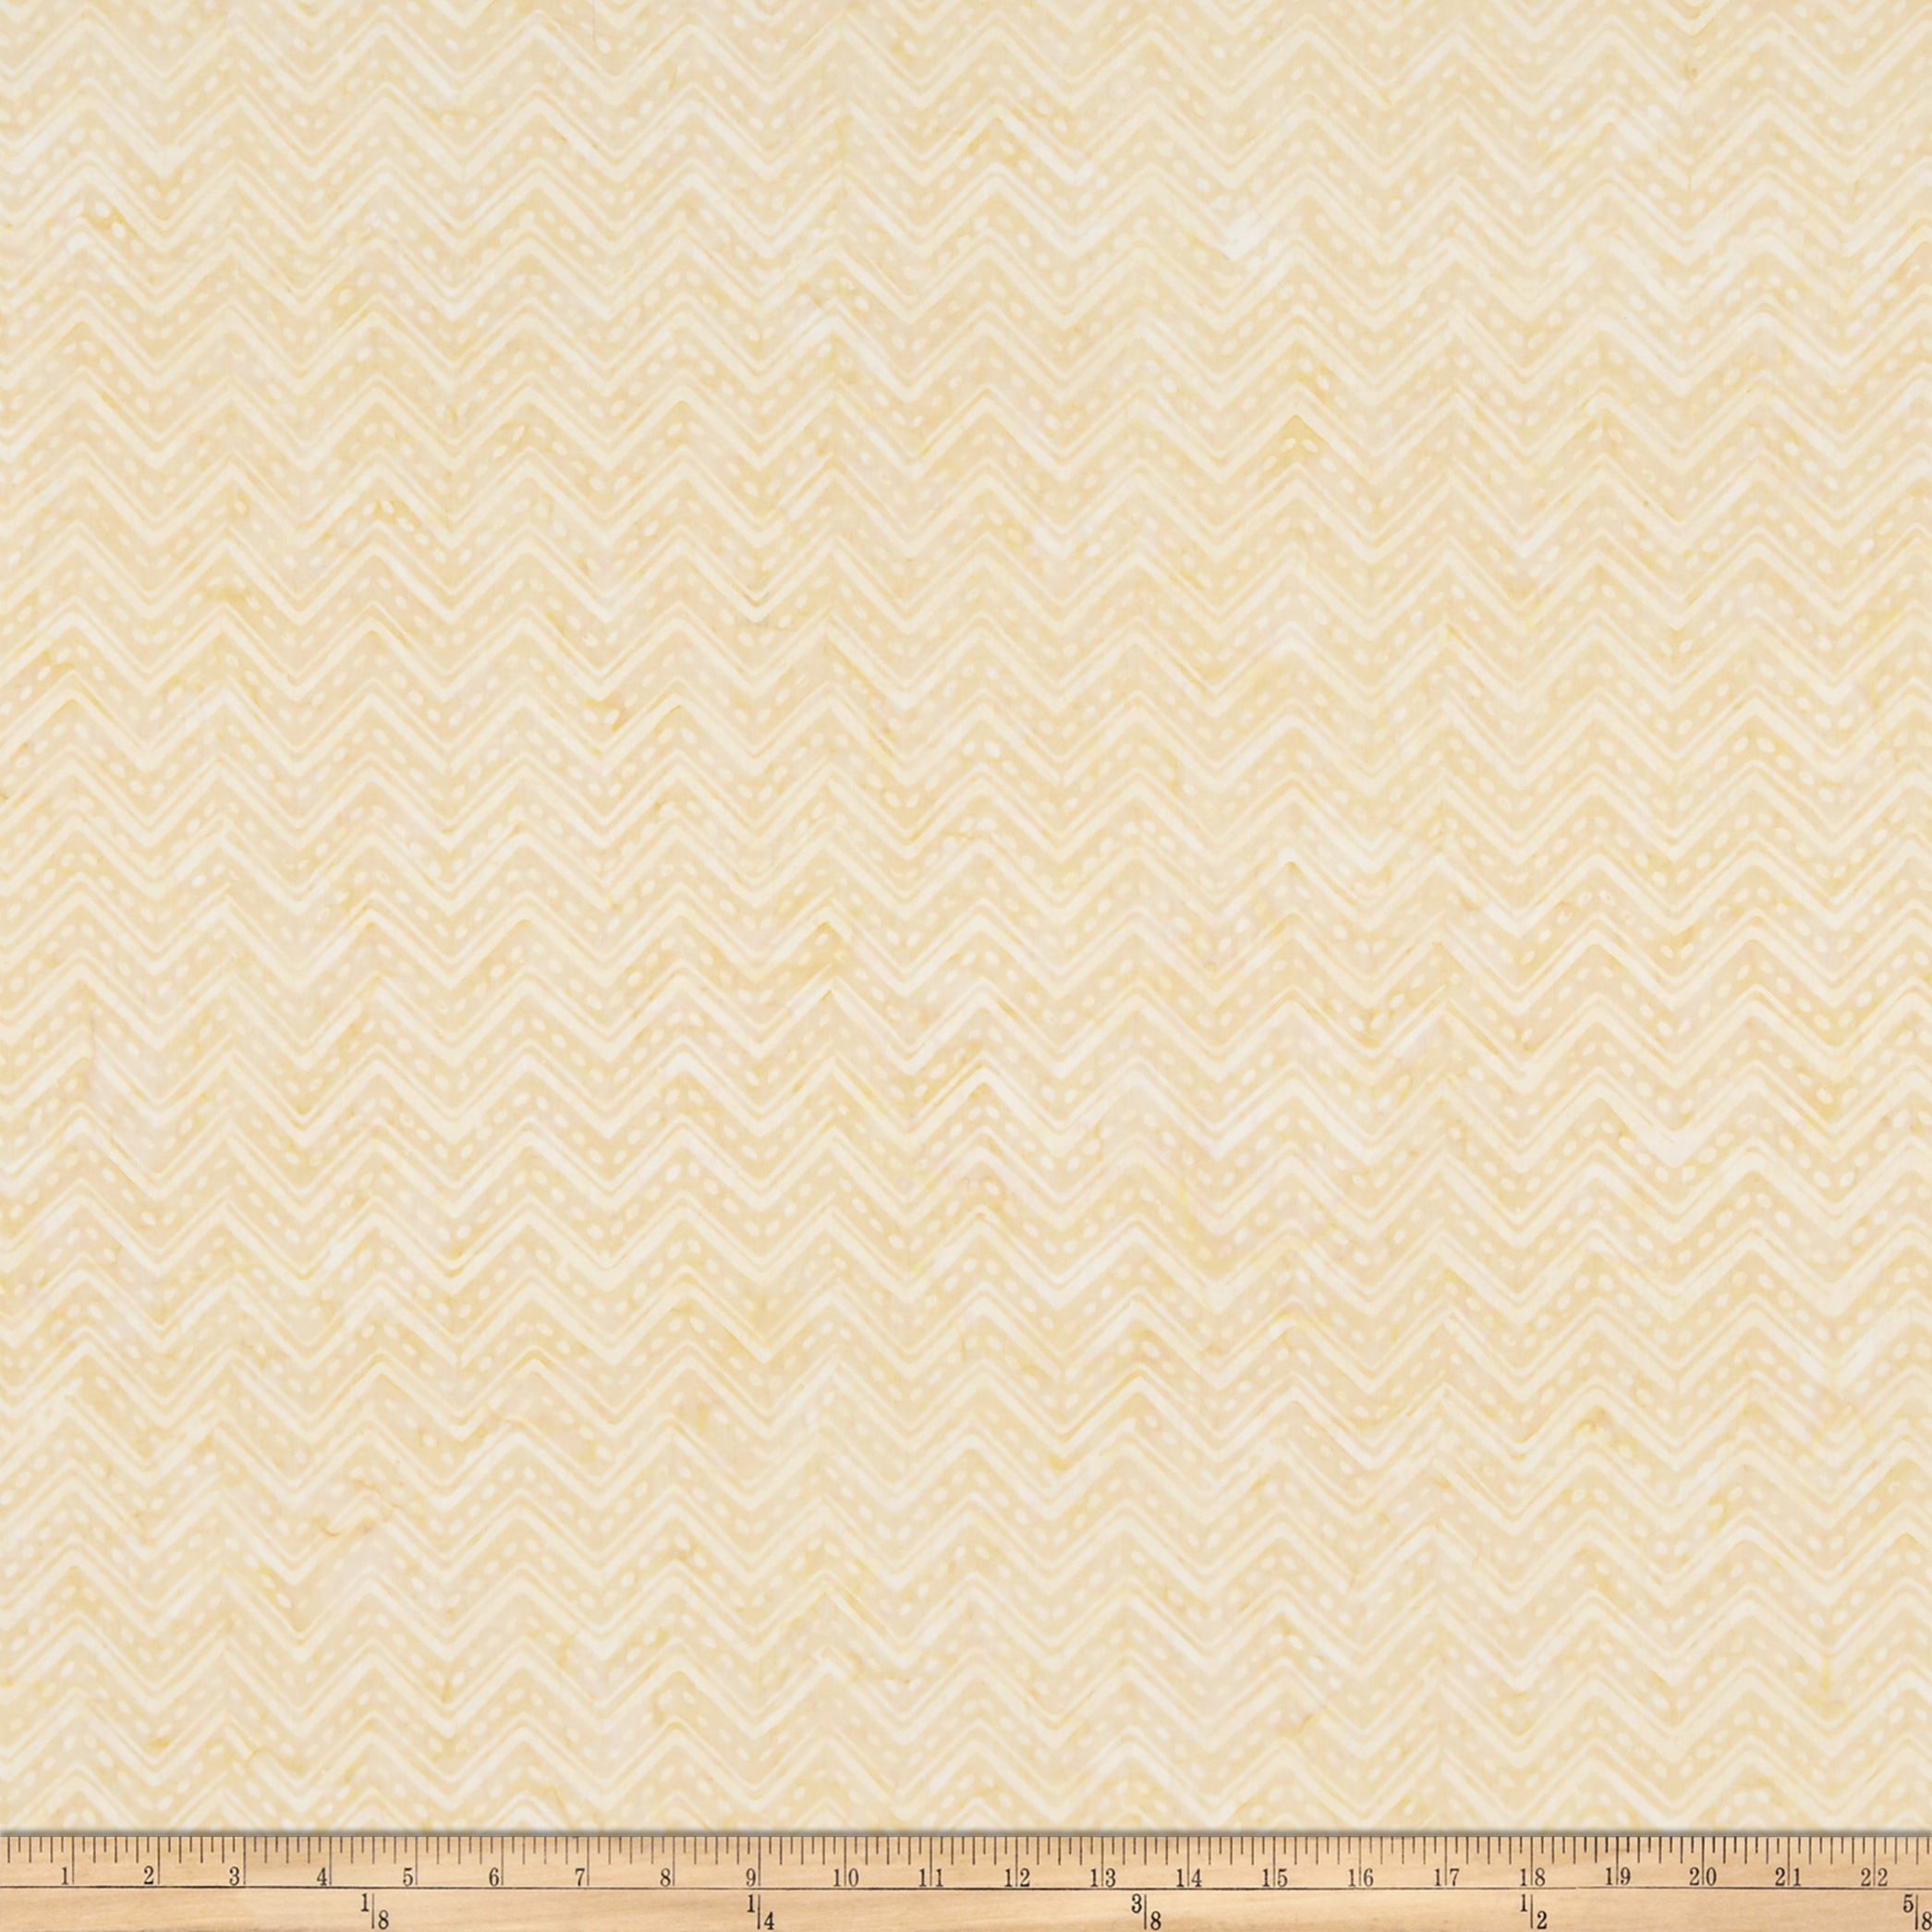 Wilmington Batiks Chevron Tan